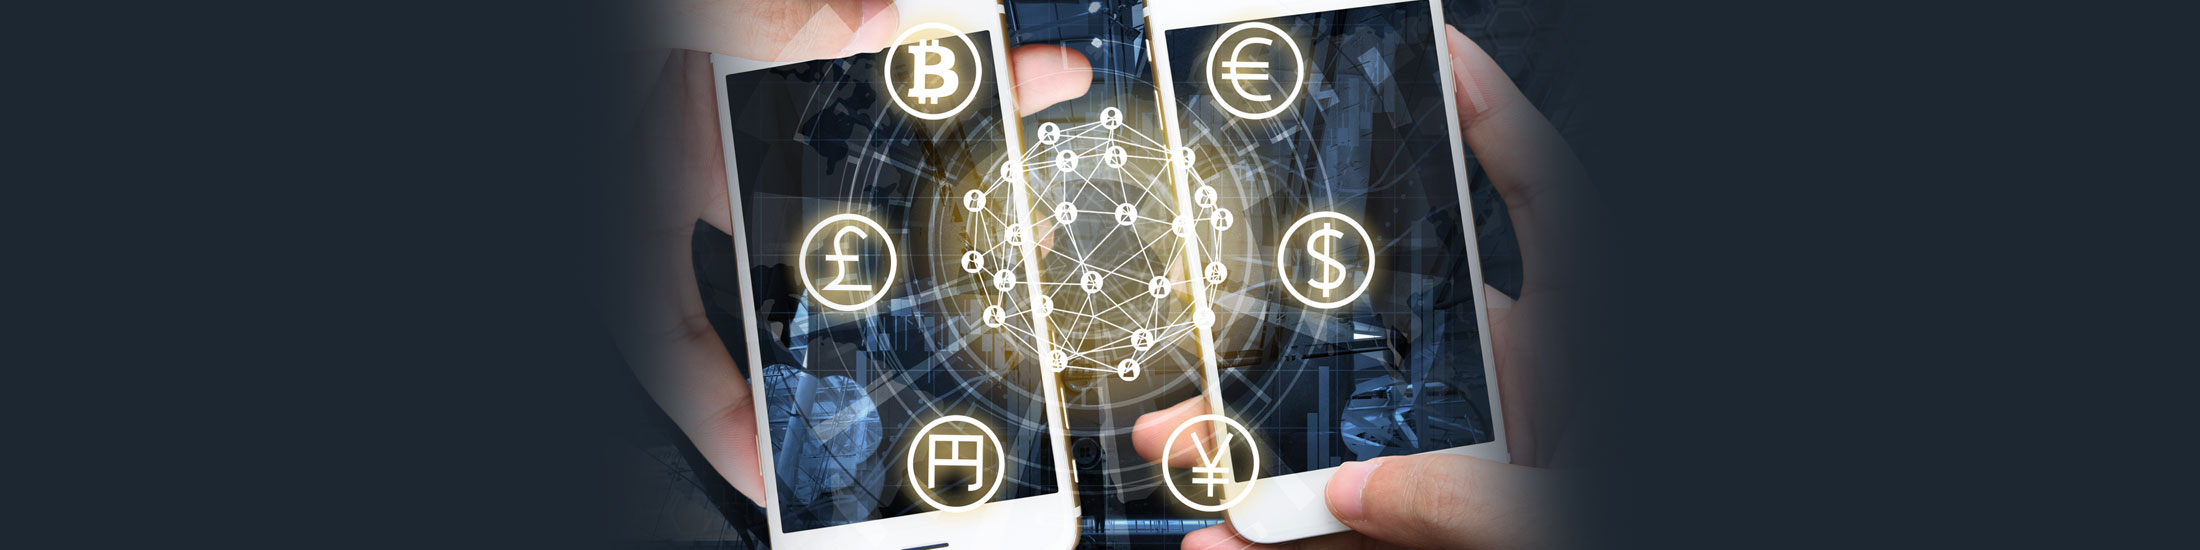 Instant Payments Transaction Values Will Reach $18 Trillion by 2025